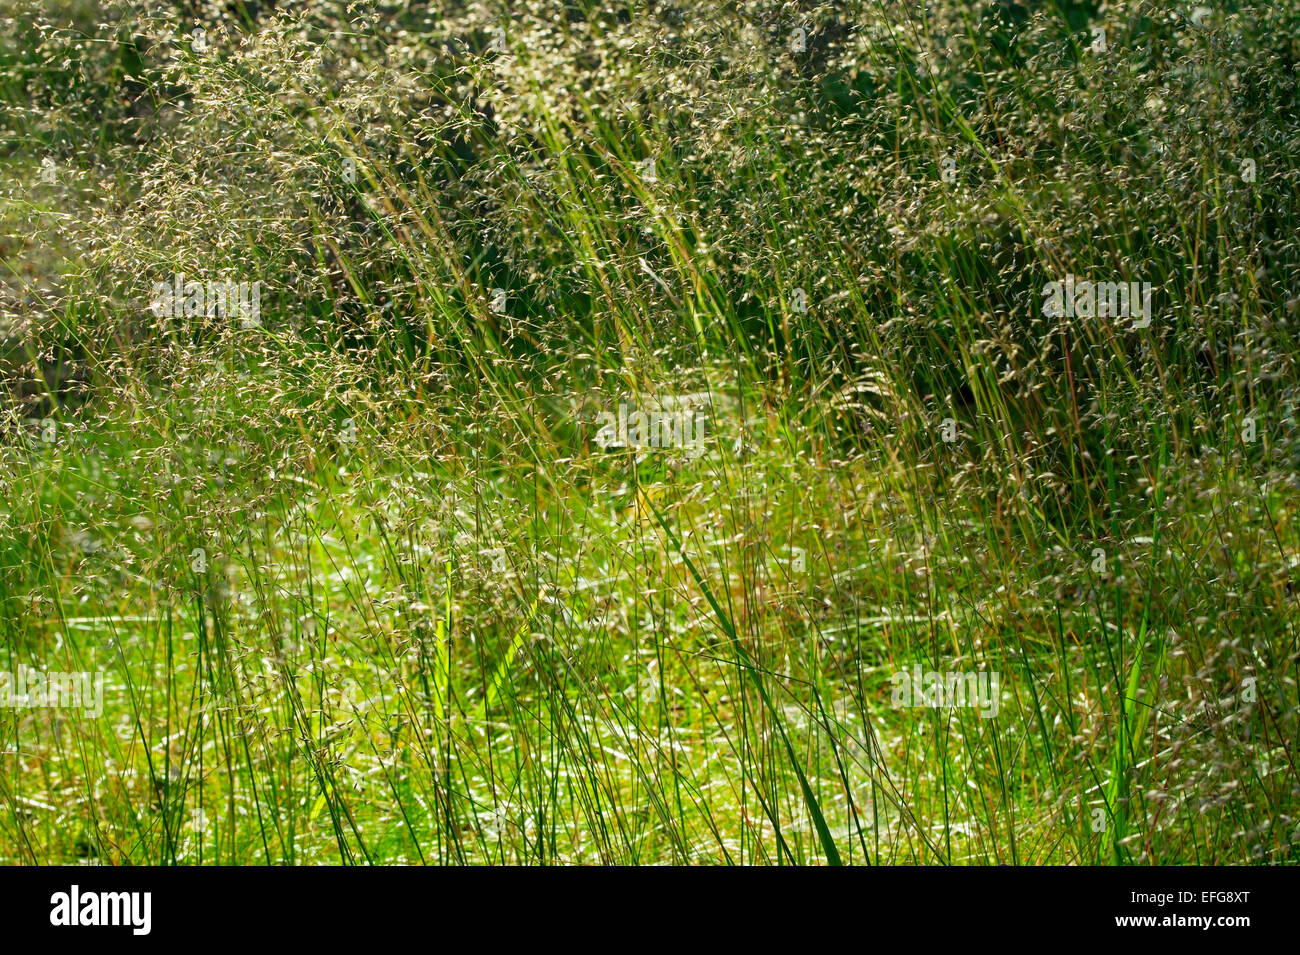 Forest undergrowth. Grass growing on forest floor. Pomerania, northern Poland. - Stock Image